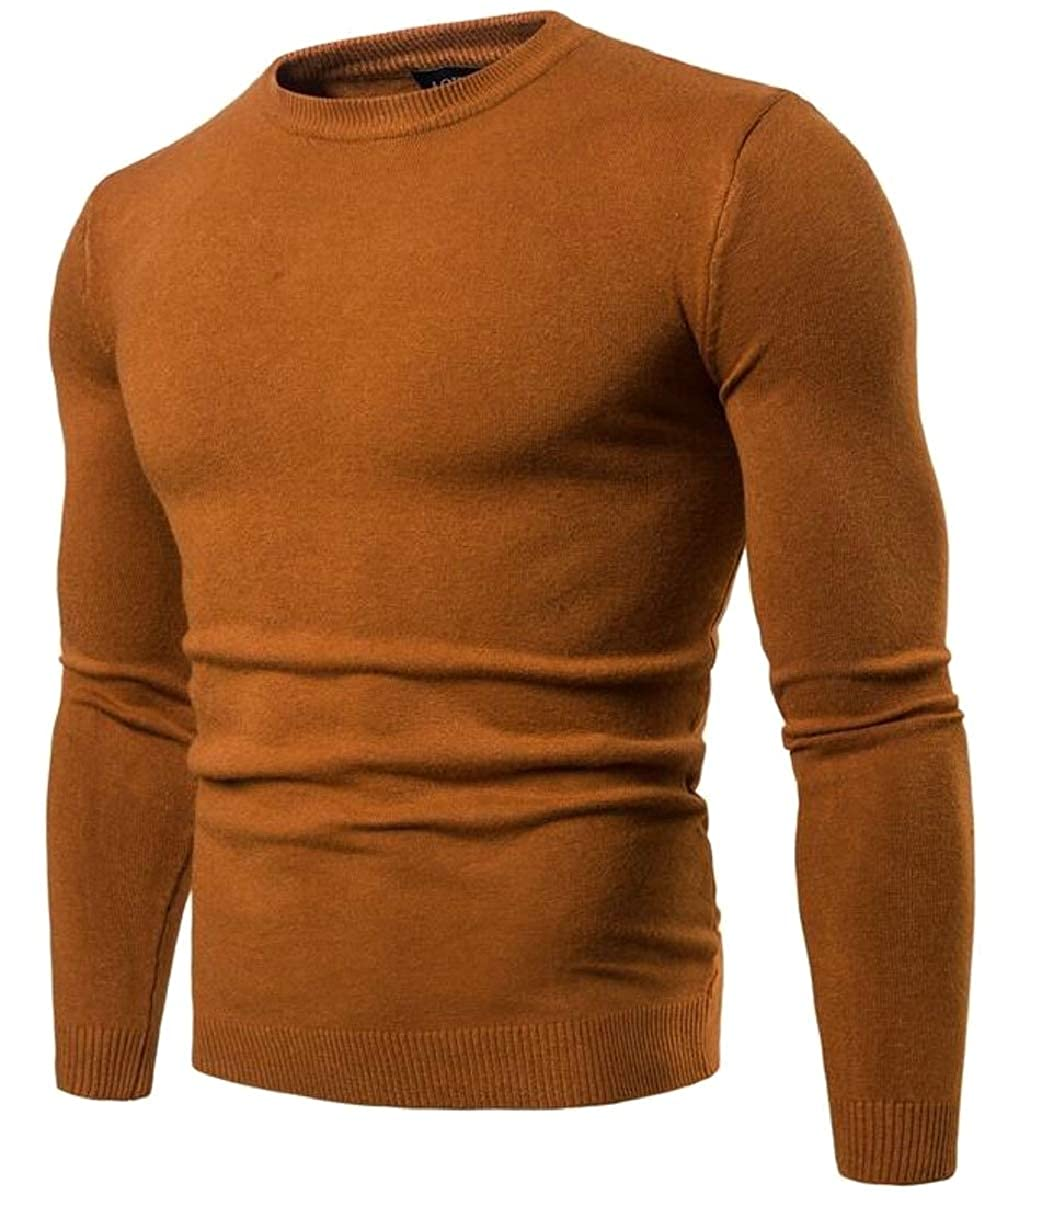 YIhujiuben Mens Knitted Sweater Casual Crewneck Solid Pullover Sweaters